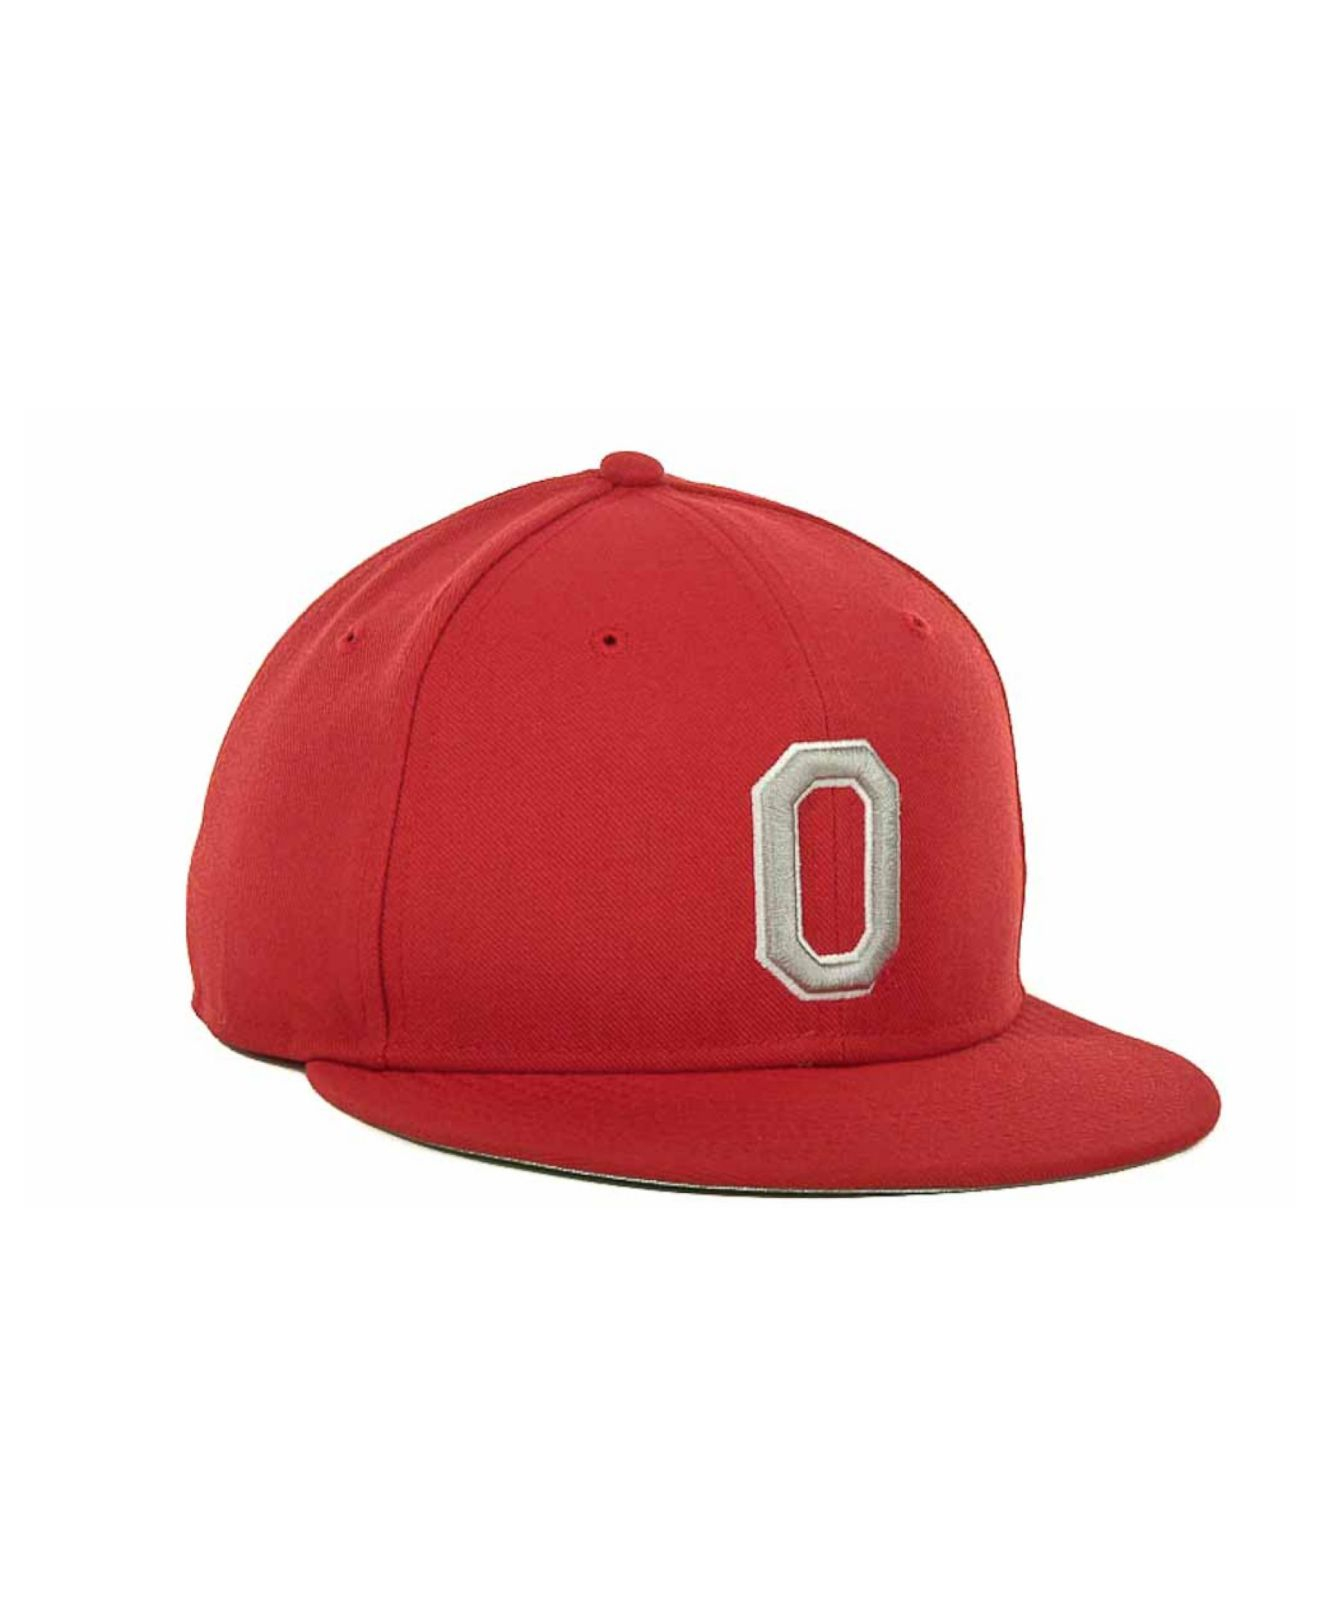 Ohio State Buckeyes Ncaa Team Sports Authentic Fitted Cap